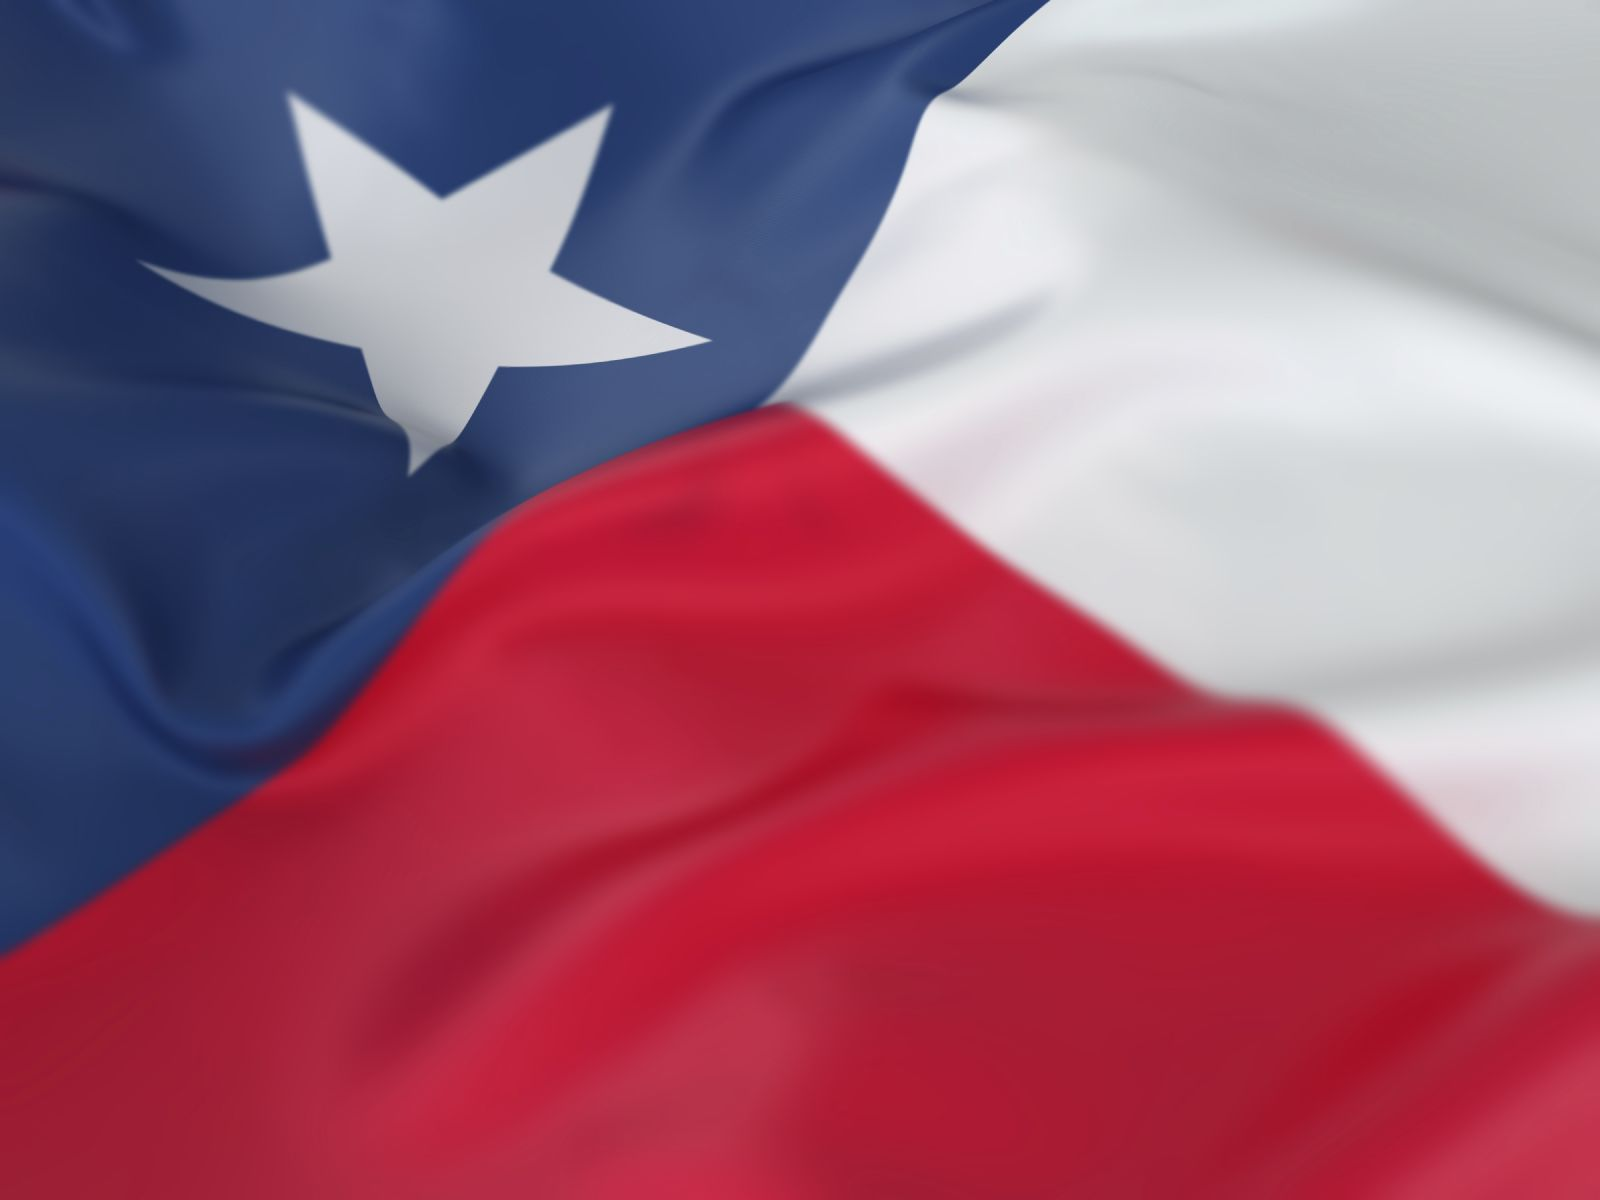 Undefined Texas Flag Wallpapers 25 Wallpapers Adorable Wallpapers Texas Flags Wallpaper Royalty Free Images